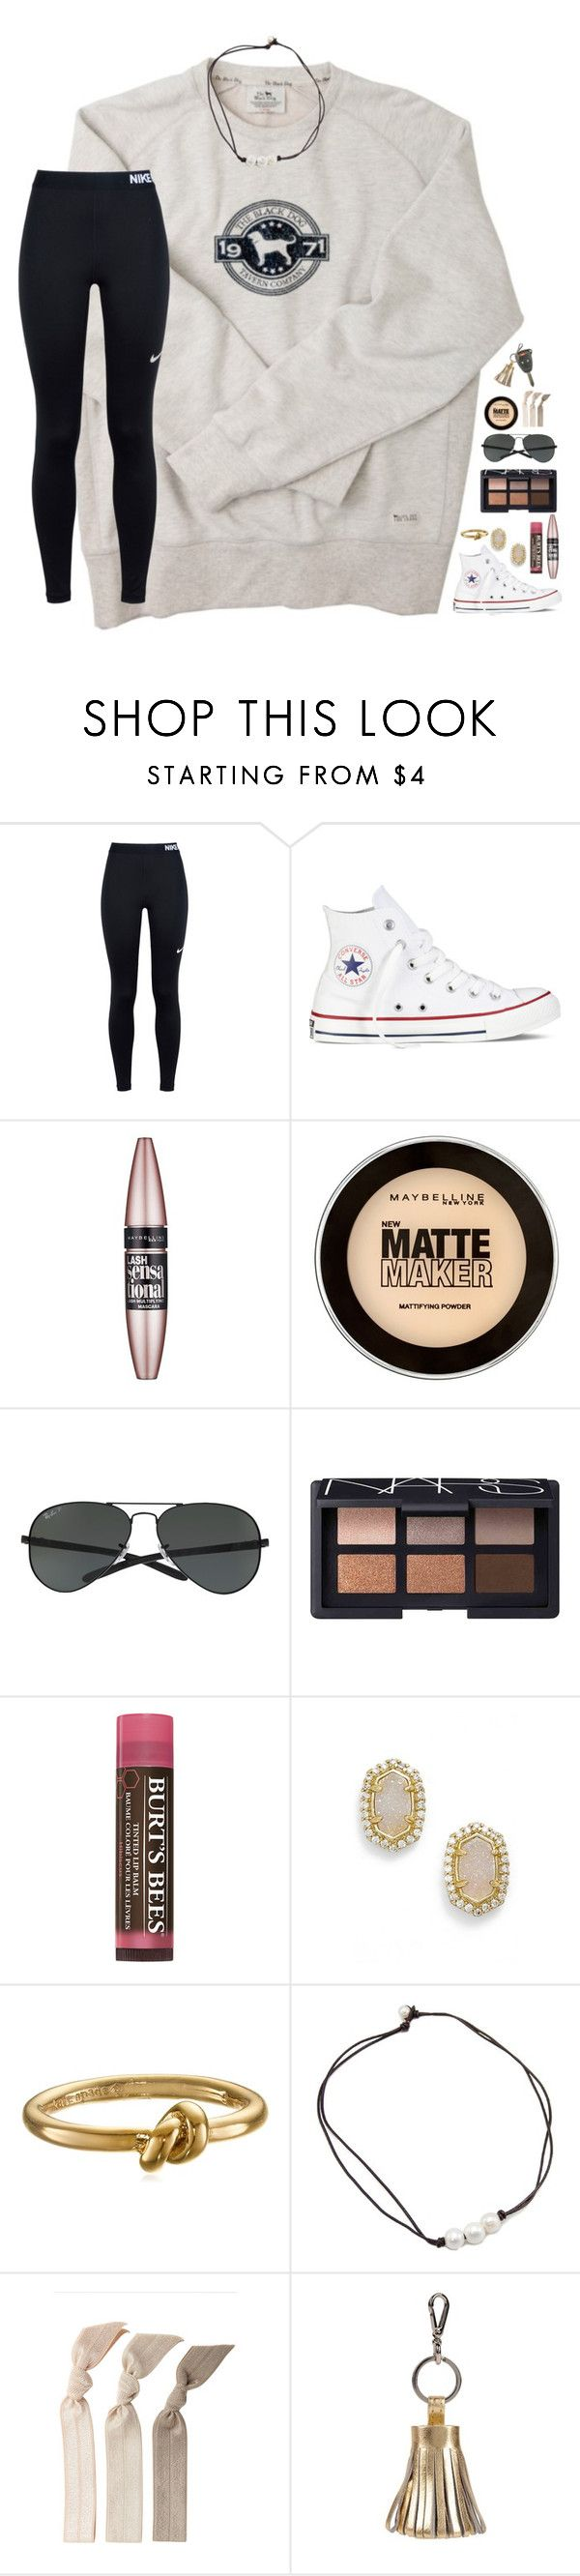 """having problems//rtd"" by lindsaygreys ❤ liked on Polyvore featuring NIKE, Converse, Maybelline, Ray-Ban, NARS Cosmetics, Burt's Bees, Kendra Scott, Kate Spade, Emi-Jay and ILI"